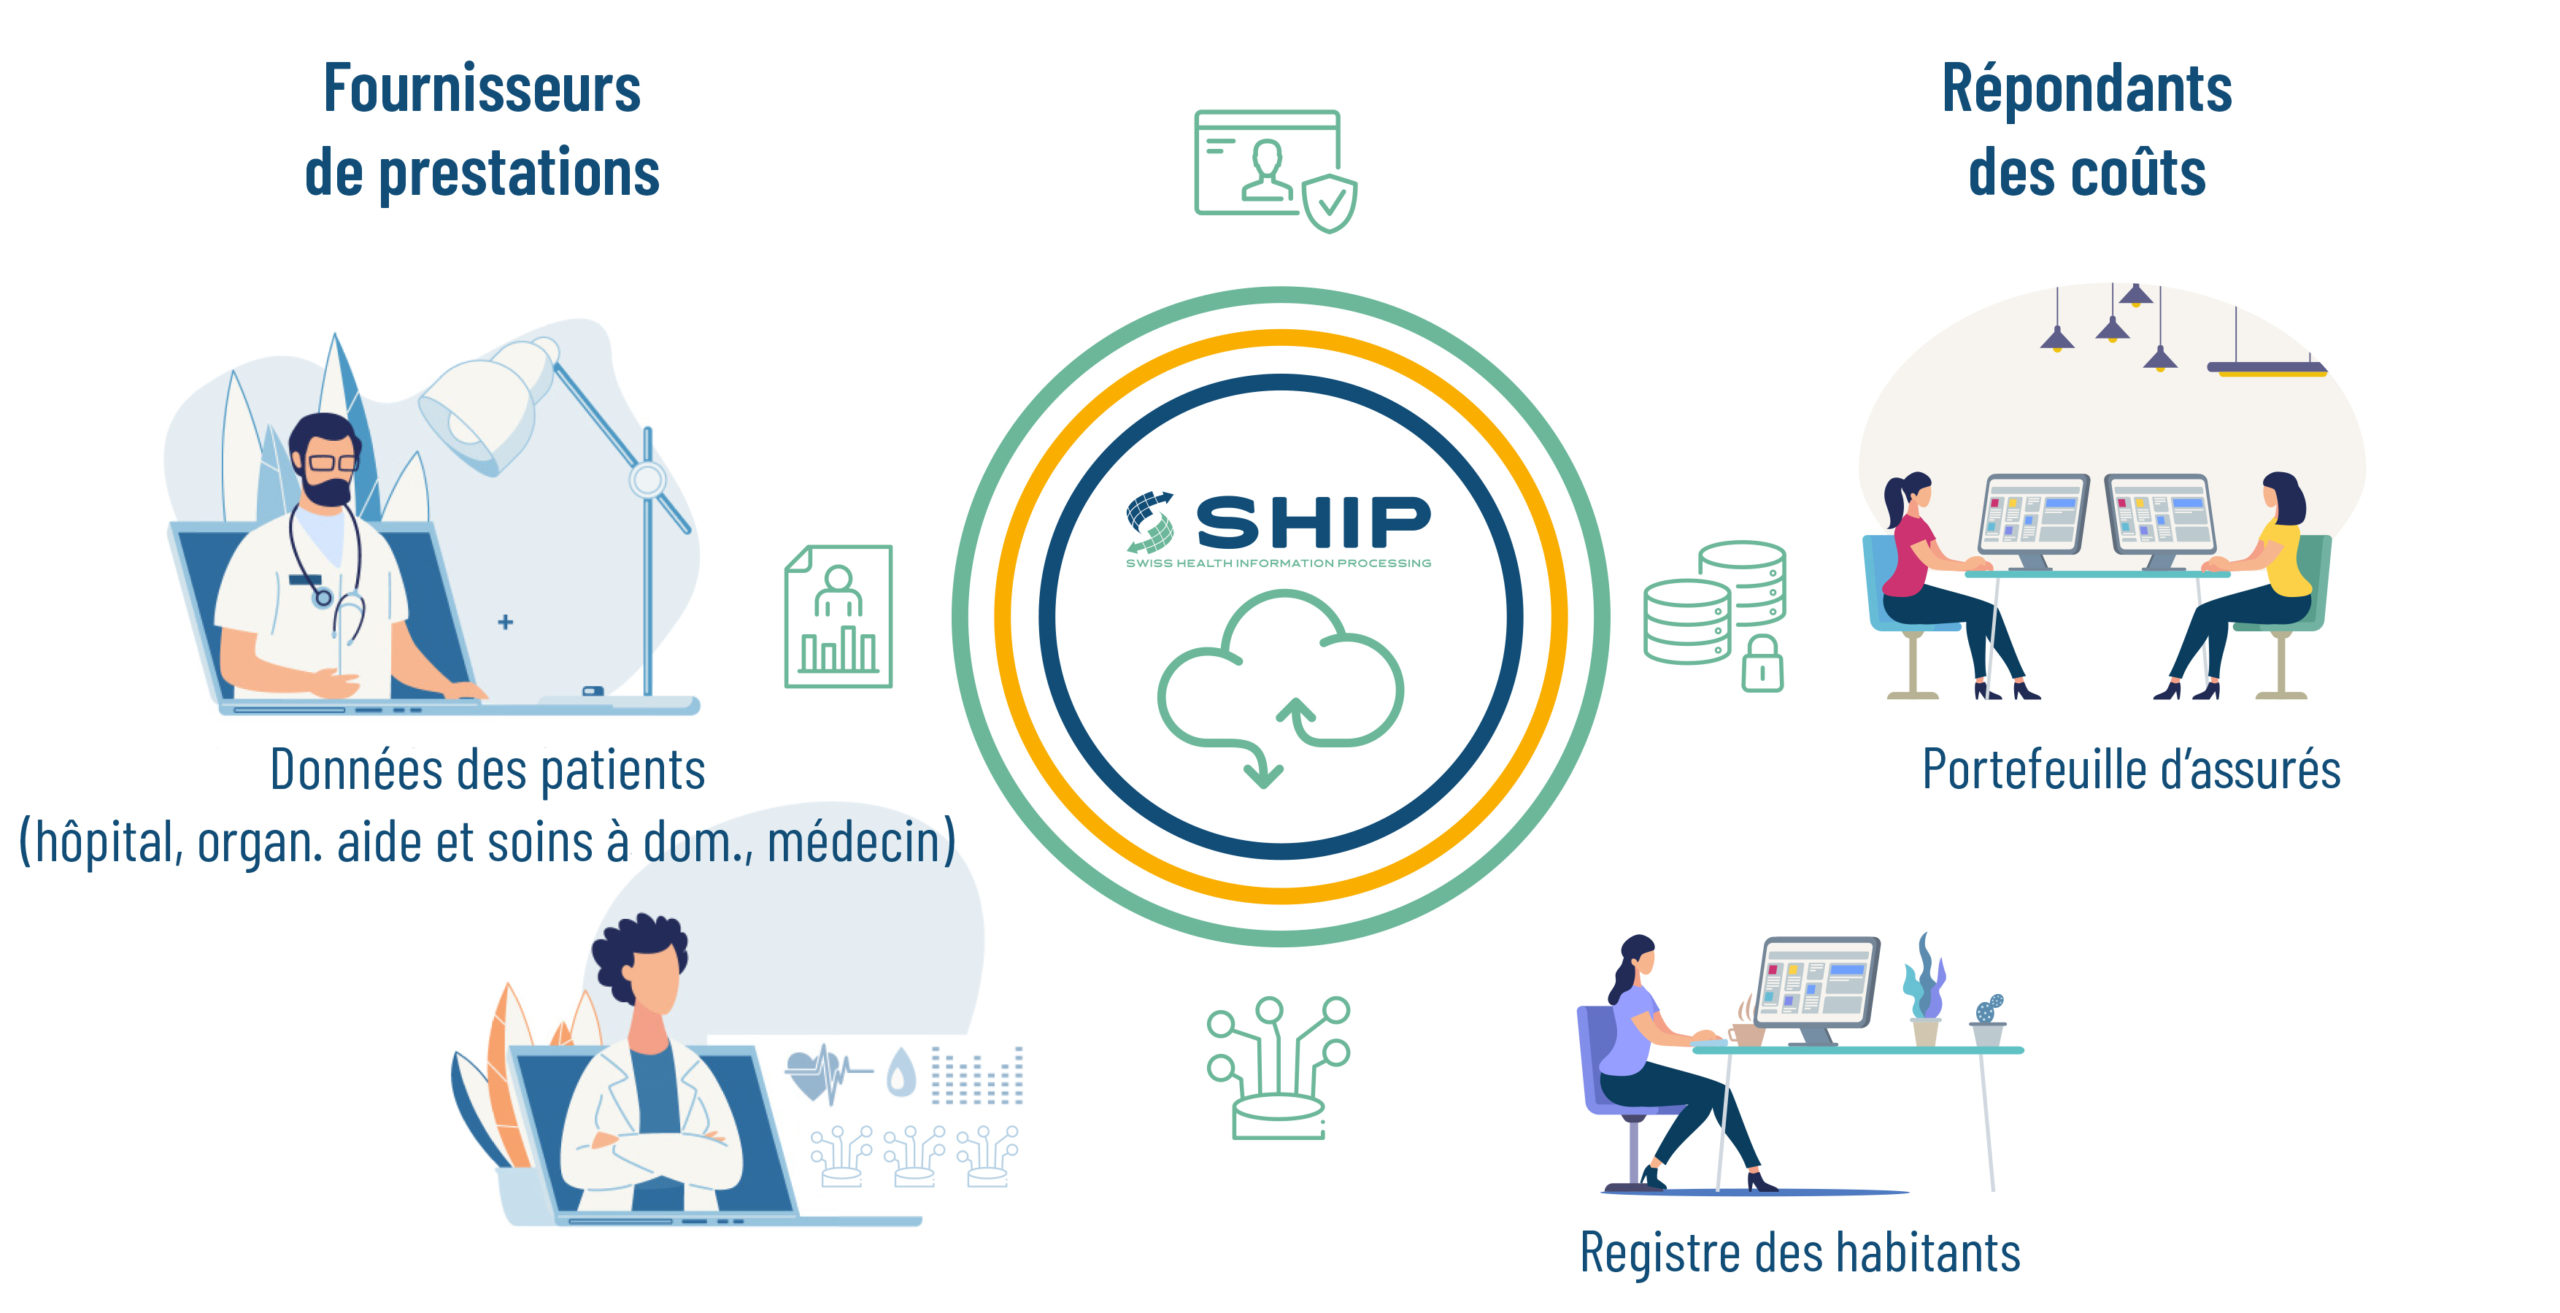 SHIP, la solution de demain